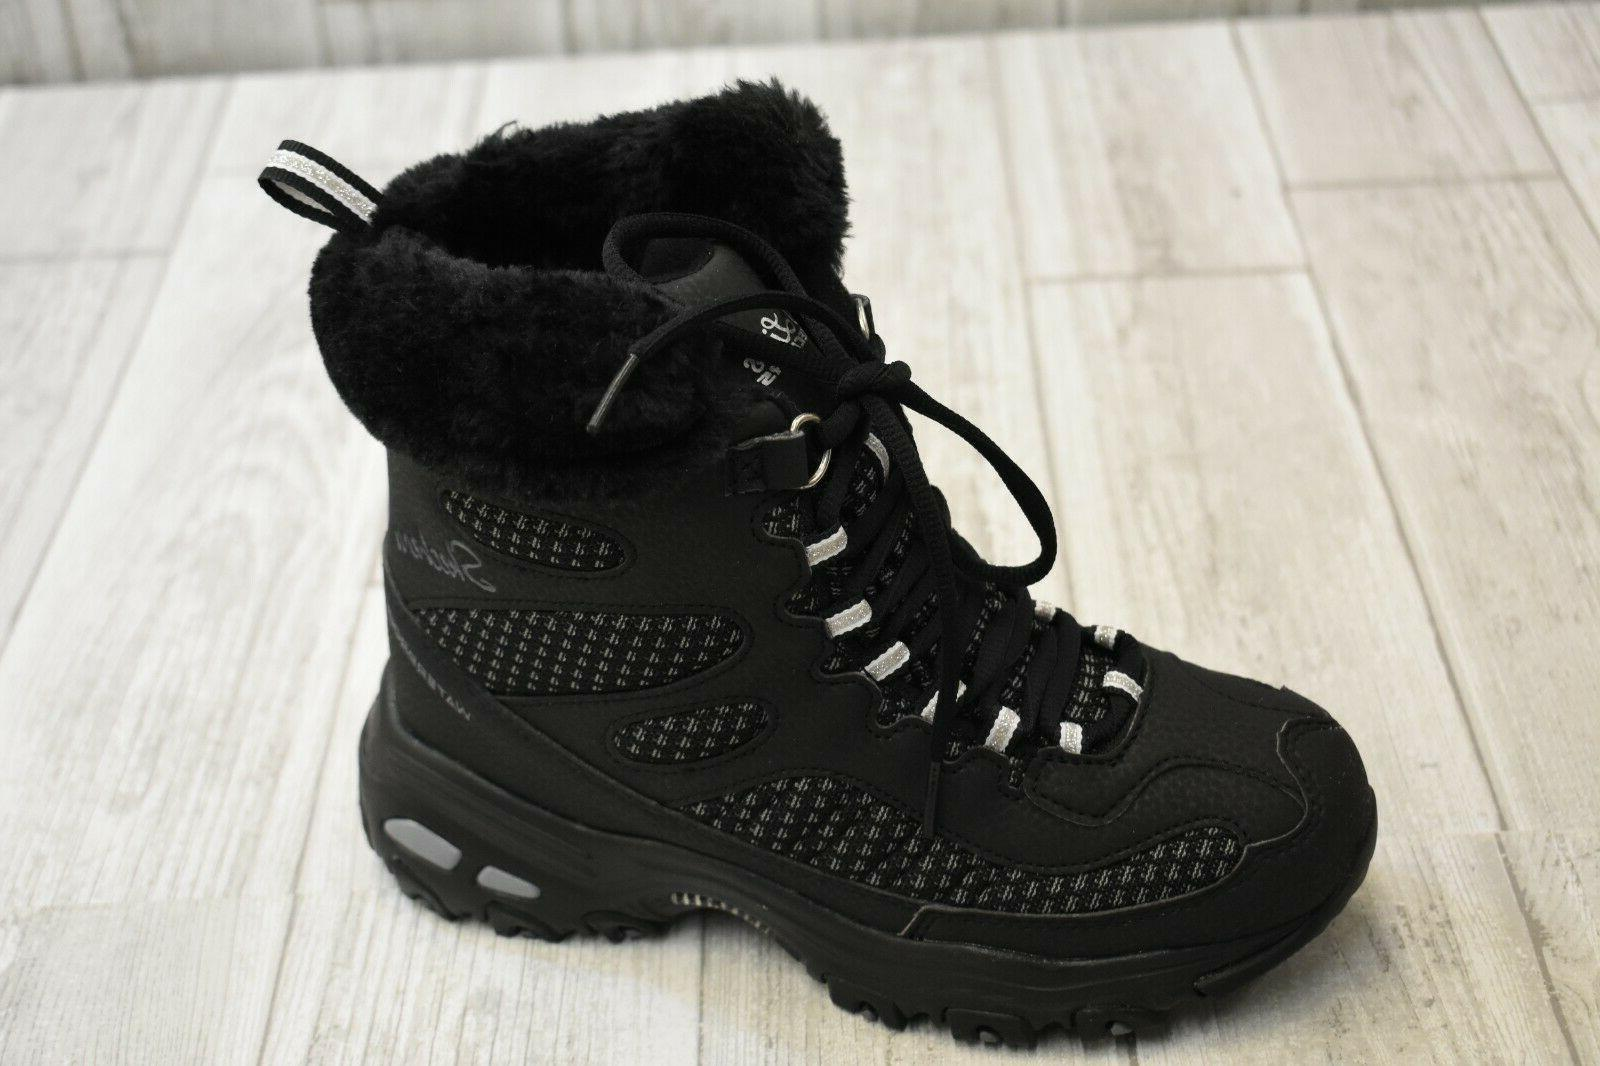 SKECHERS Plaza Boot Black NEW!